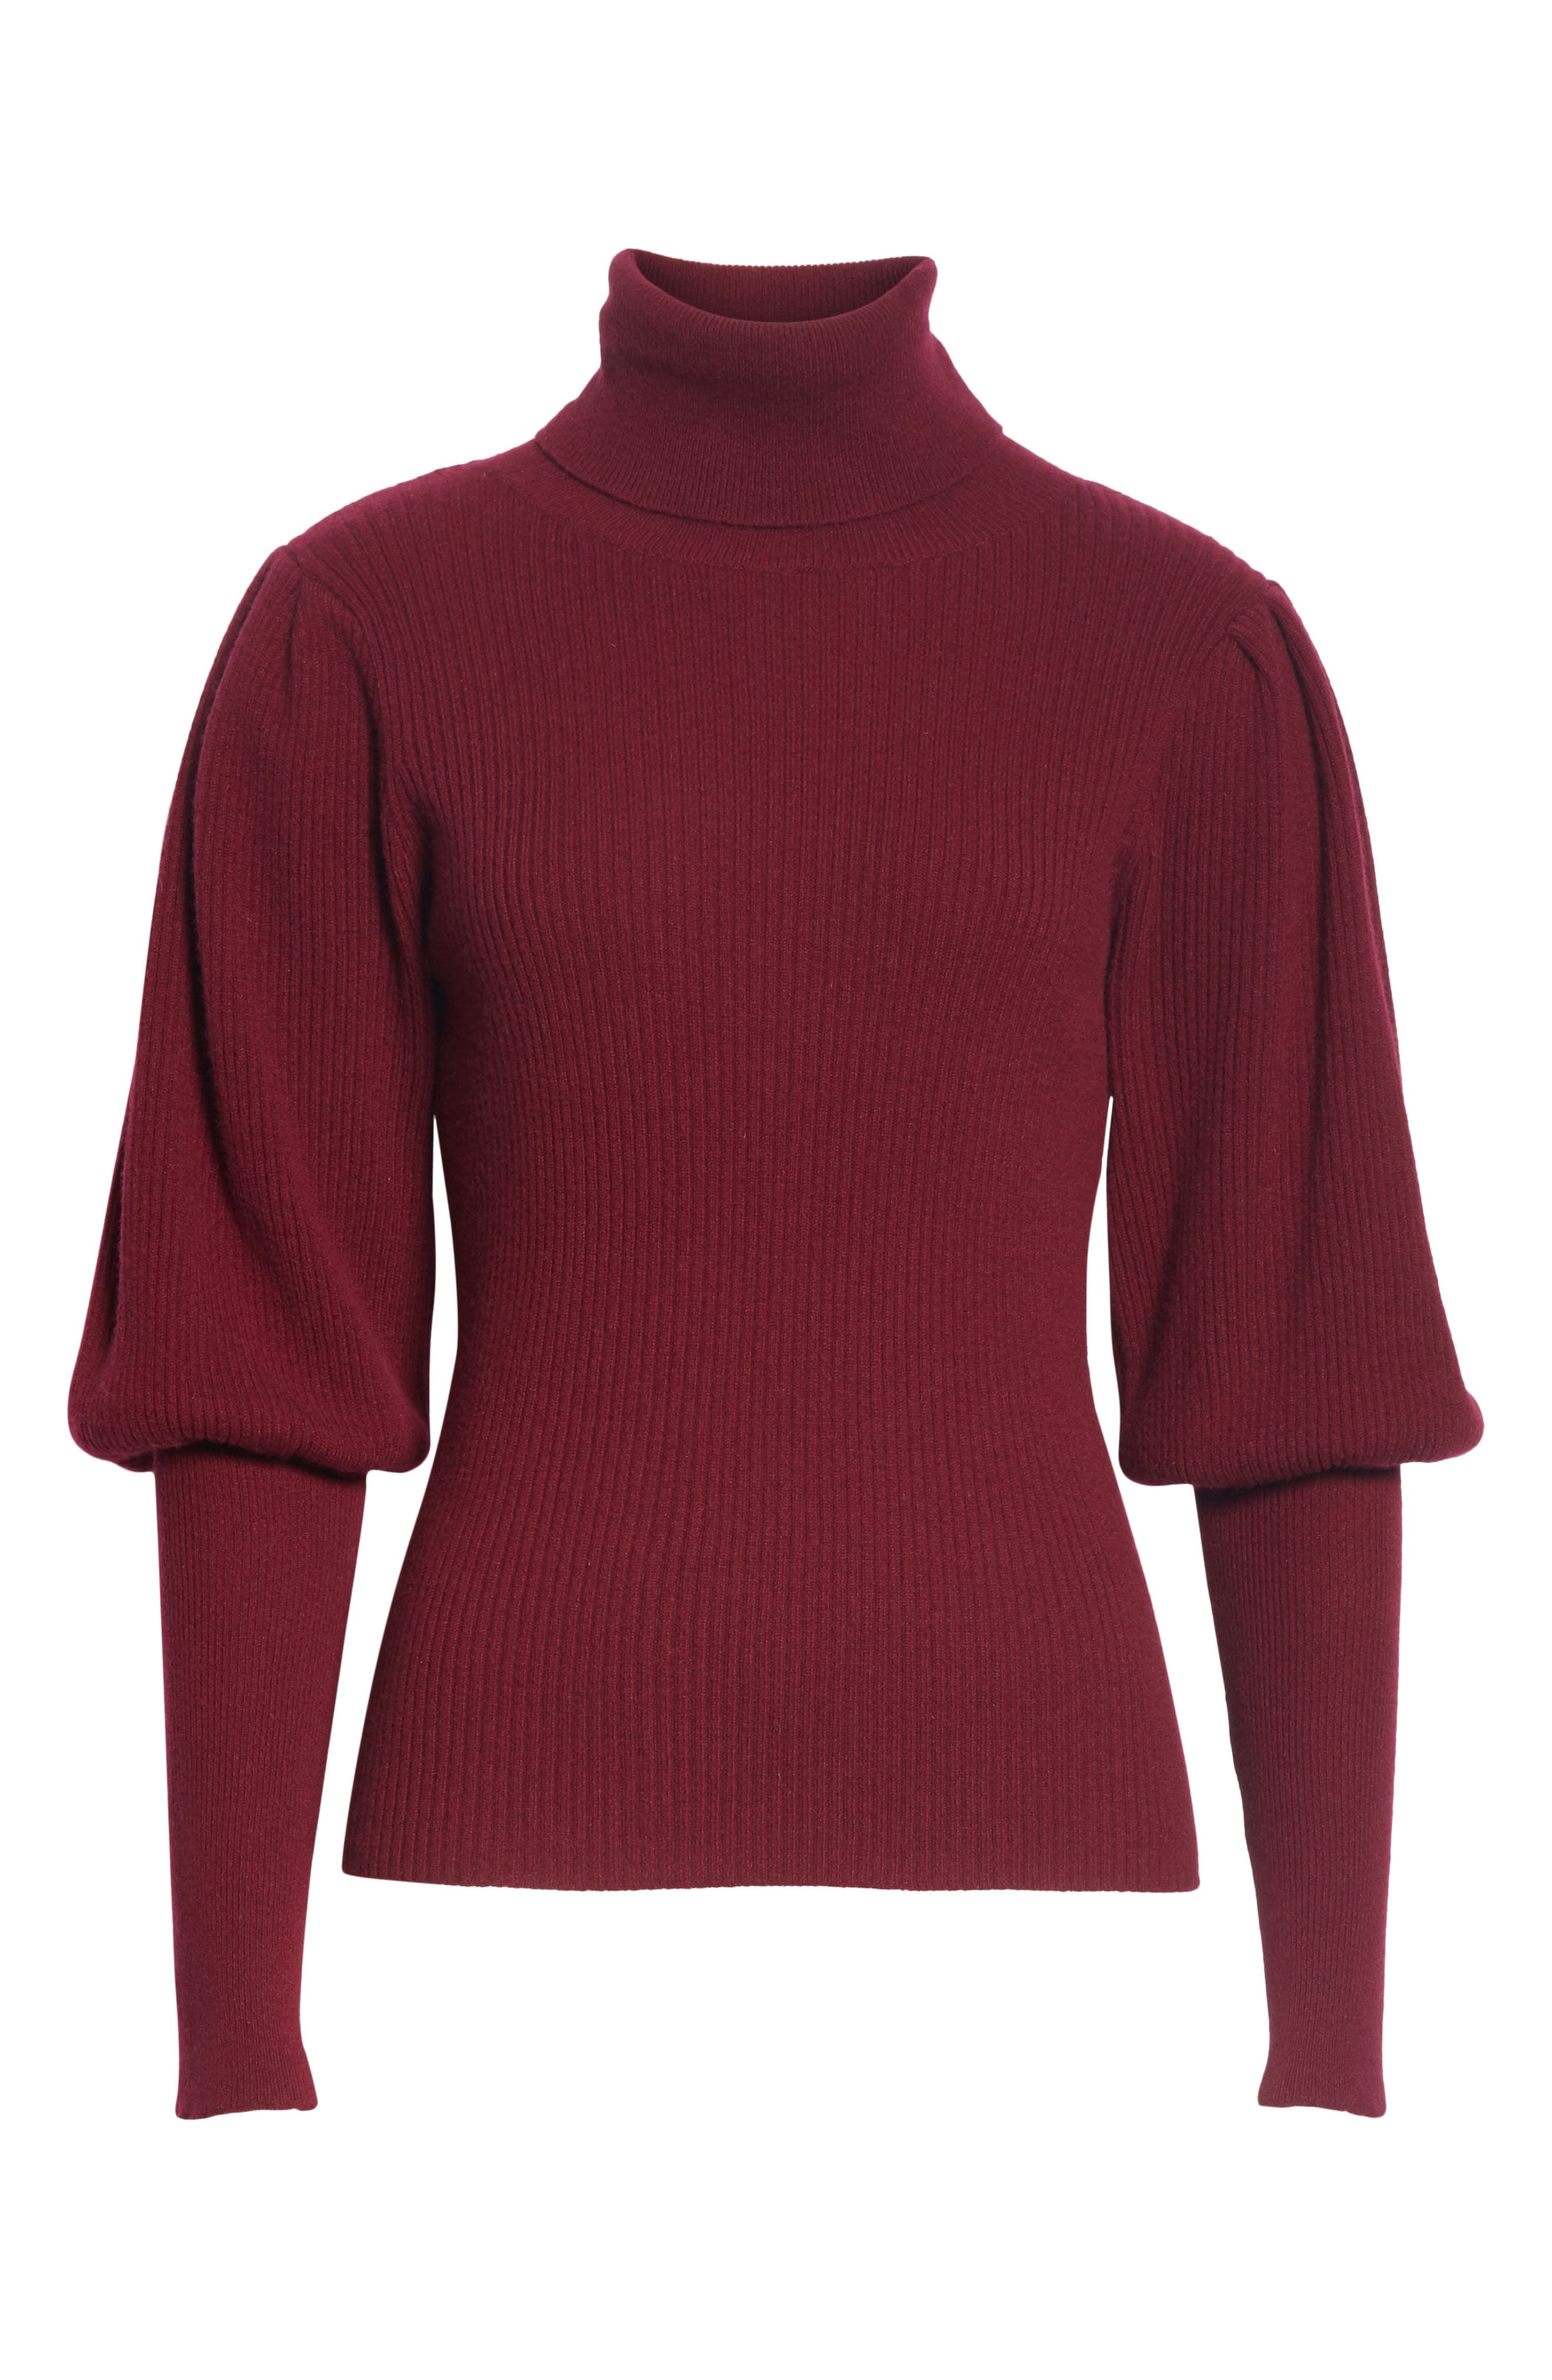 Bishop Sleeve Cashmere Sweater,                             Alternate thumbnail 6, color,                             933